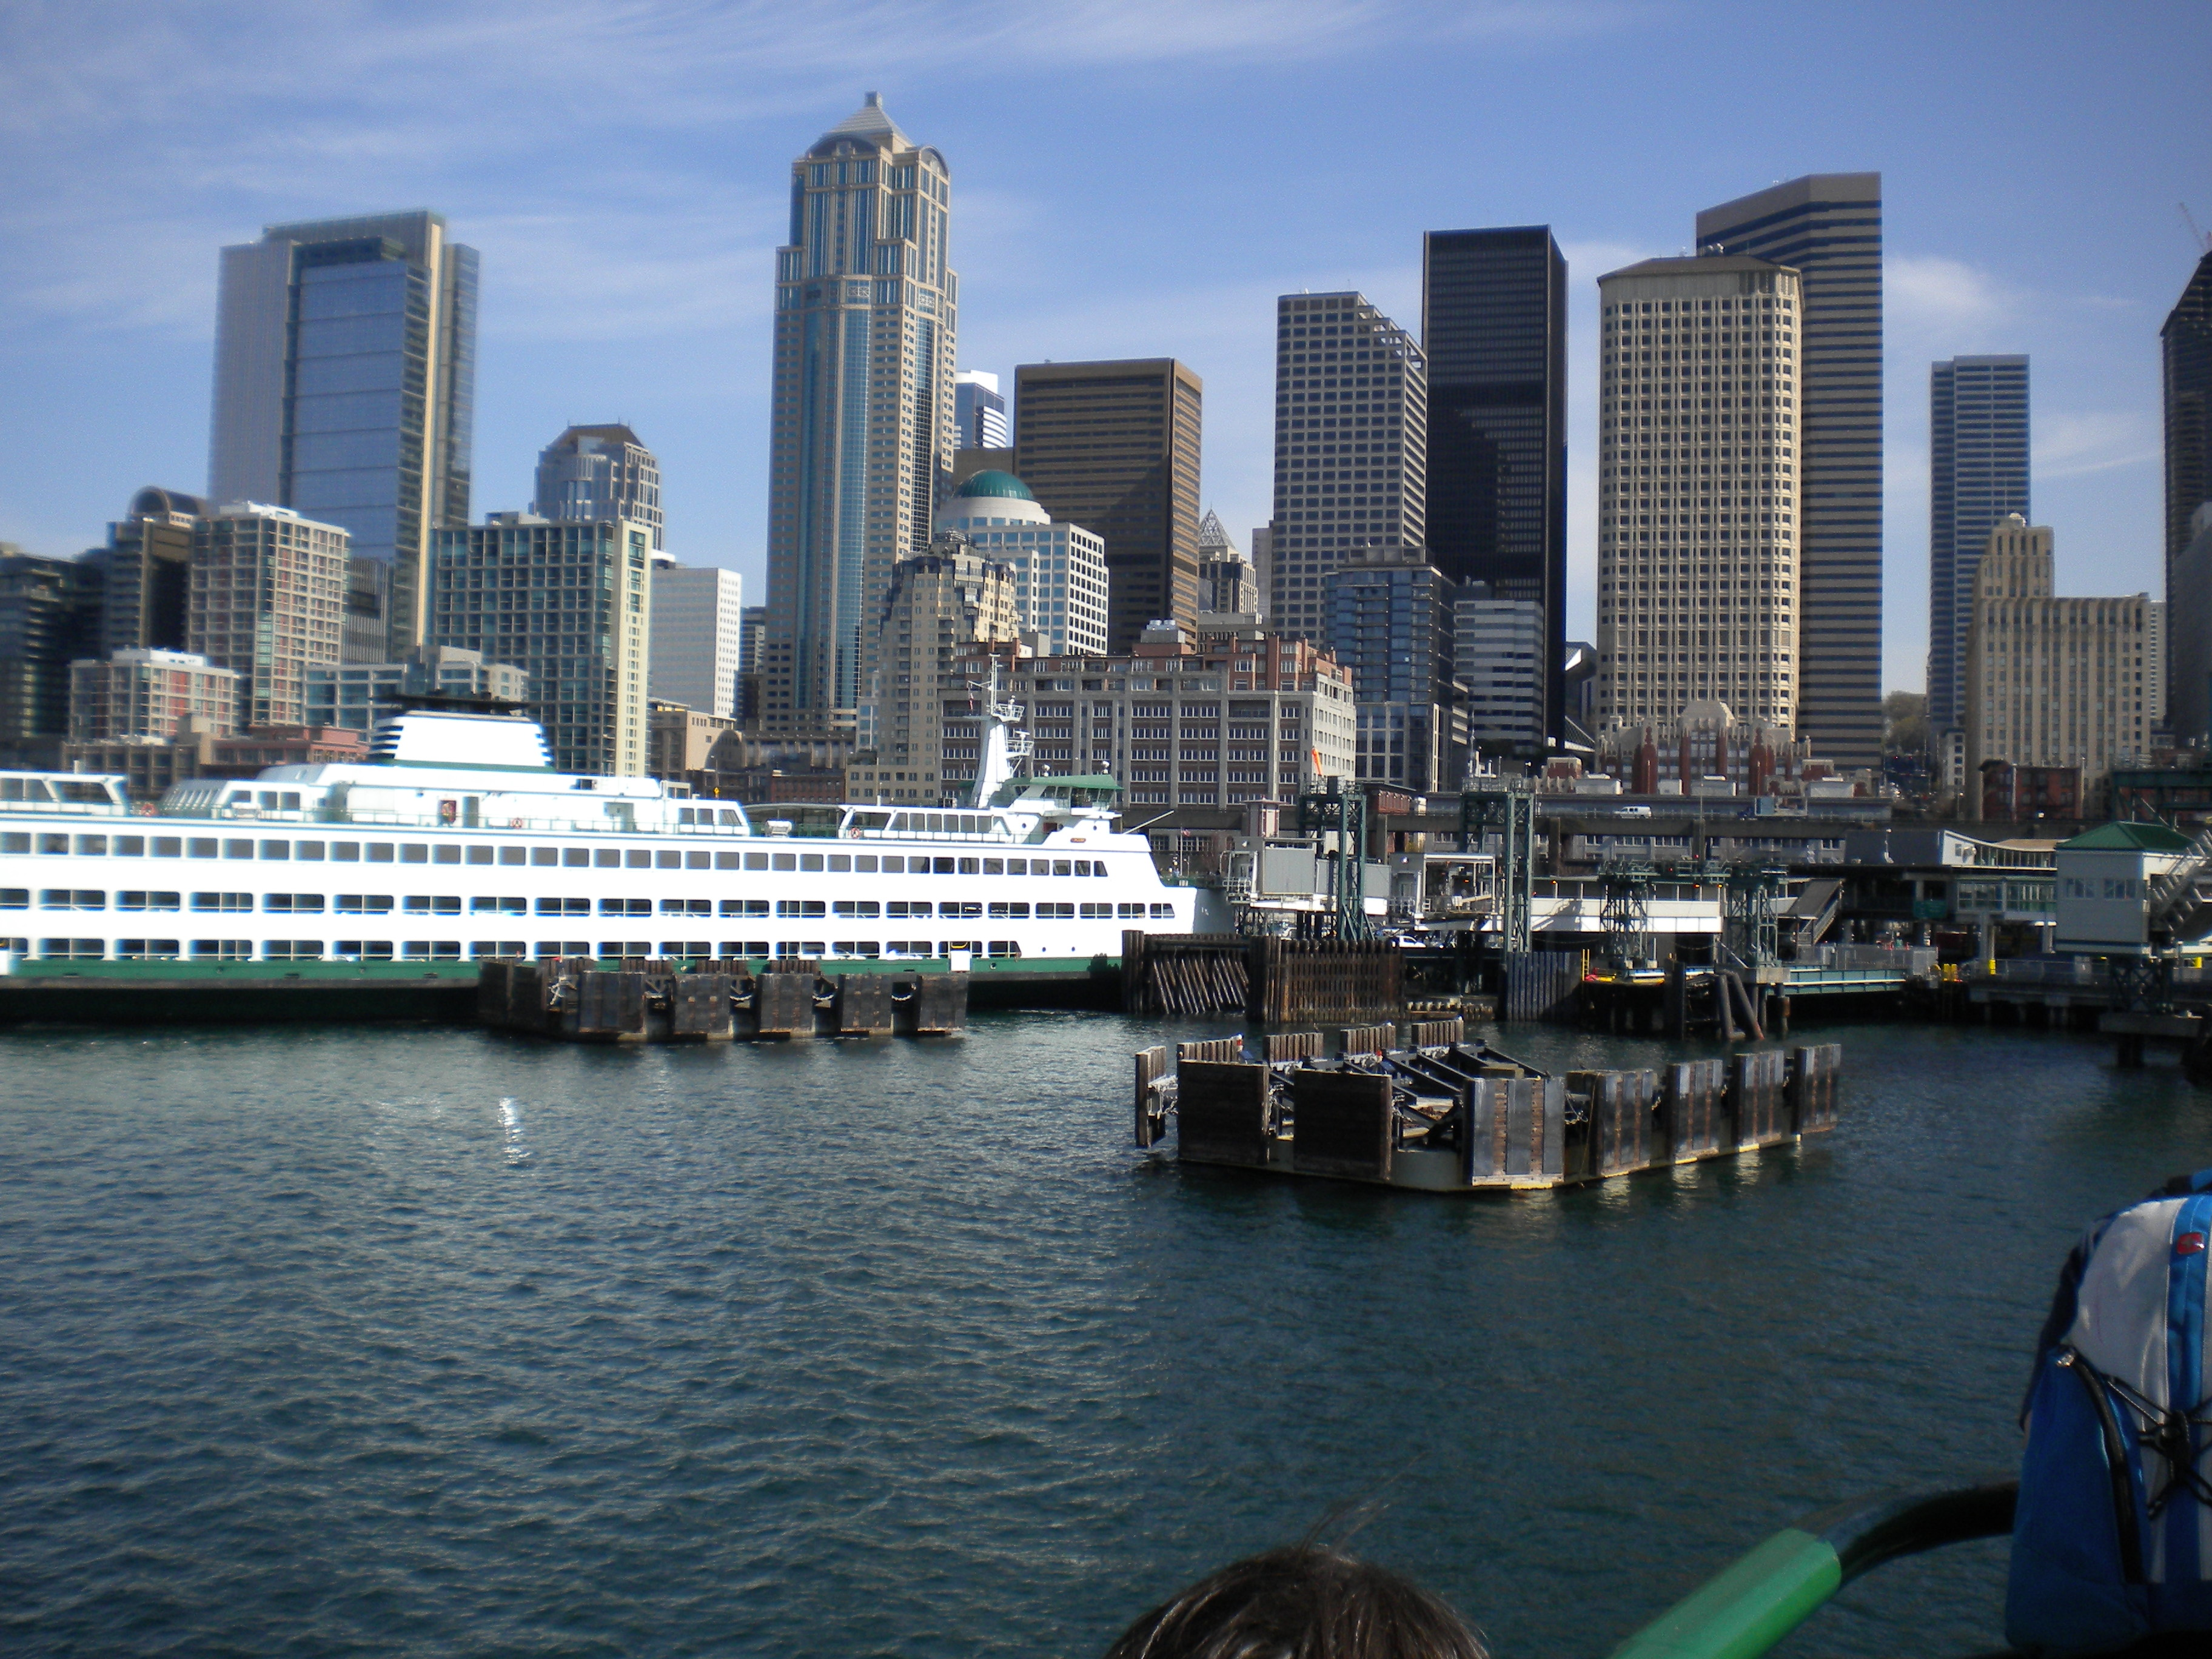 Arriving in Seattle via Washington State Ferries